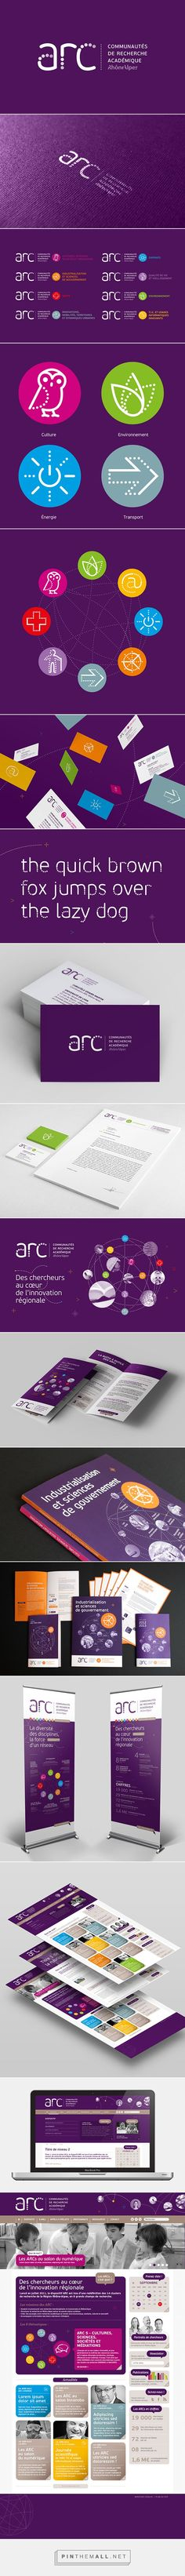 ARC Brand Indentity on Behance... - a grouped images picture - Pin Them All